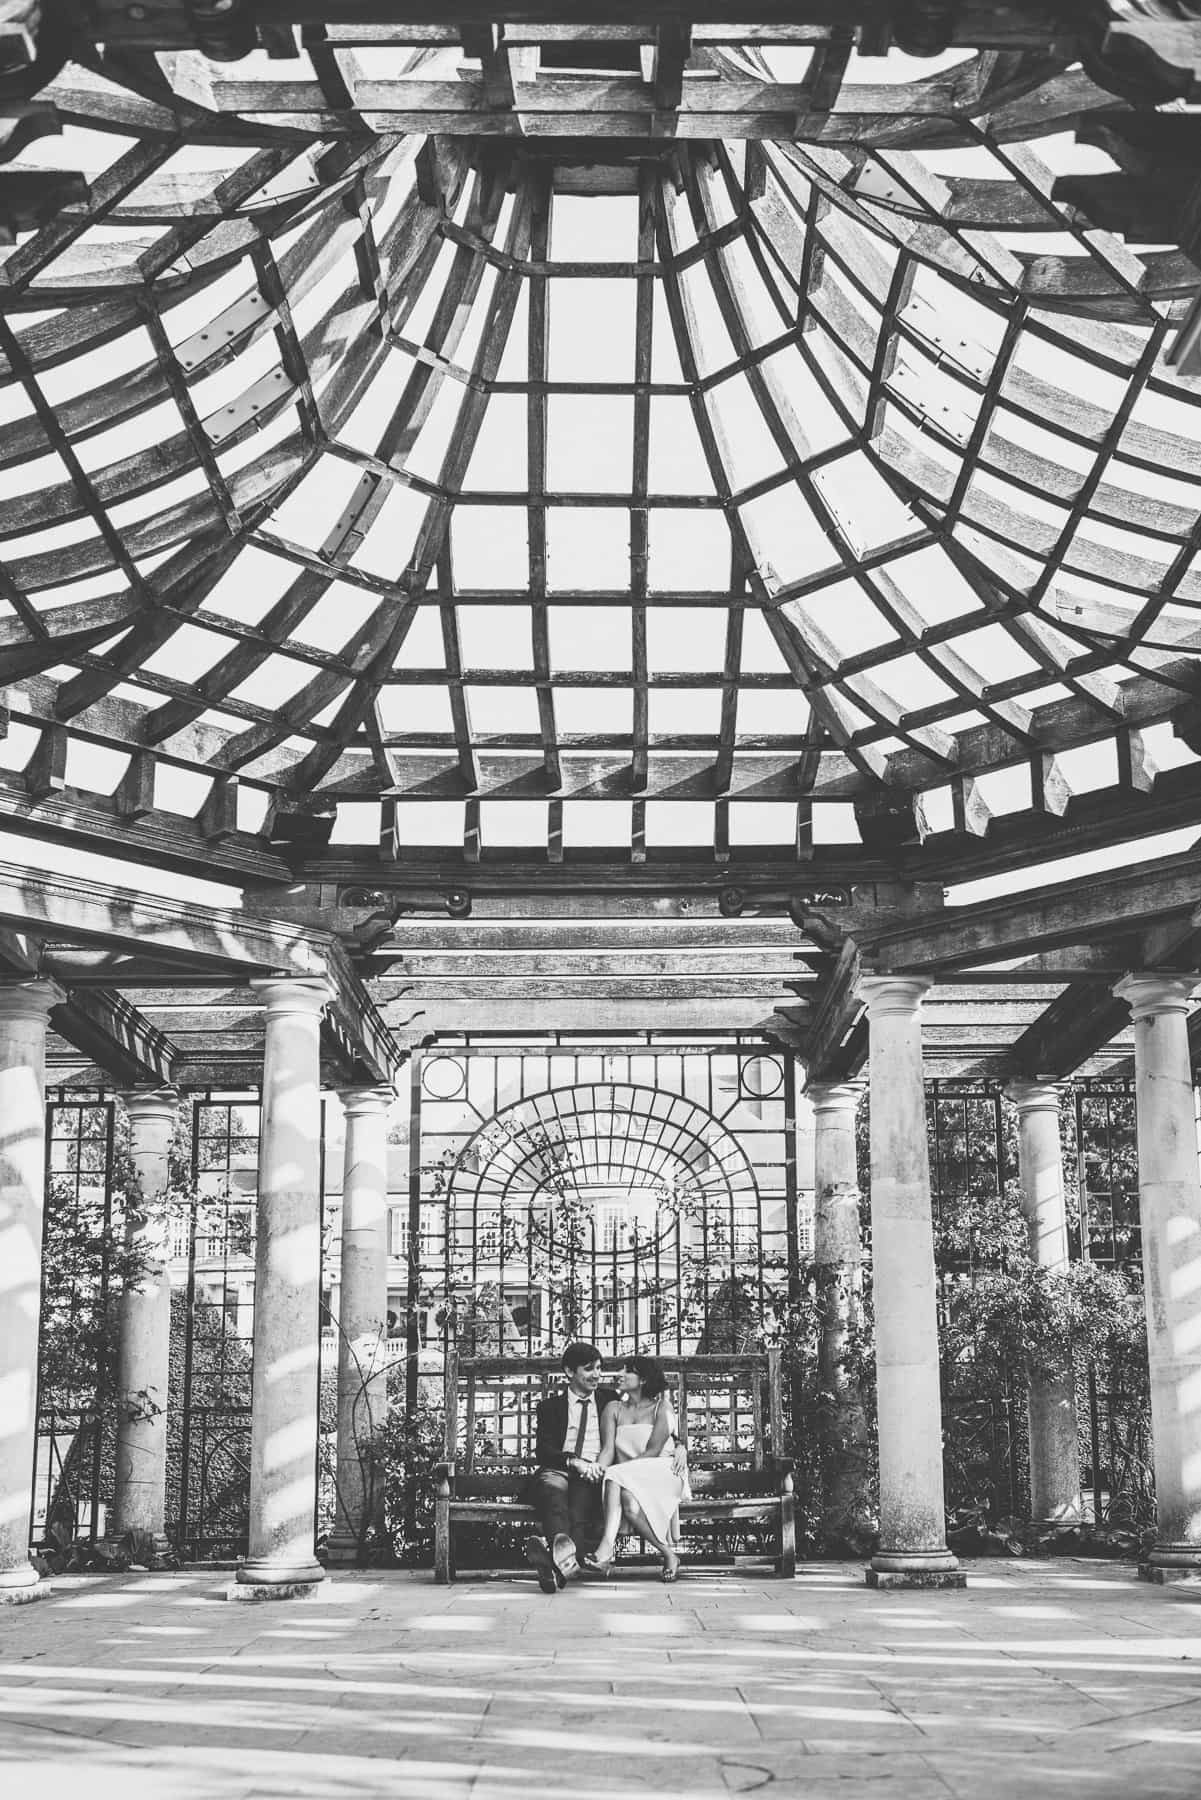 The stunning beam roof of the Hampstead Pergola surrounds the bride and groom cuddling on a bench